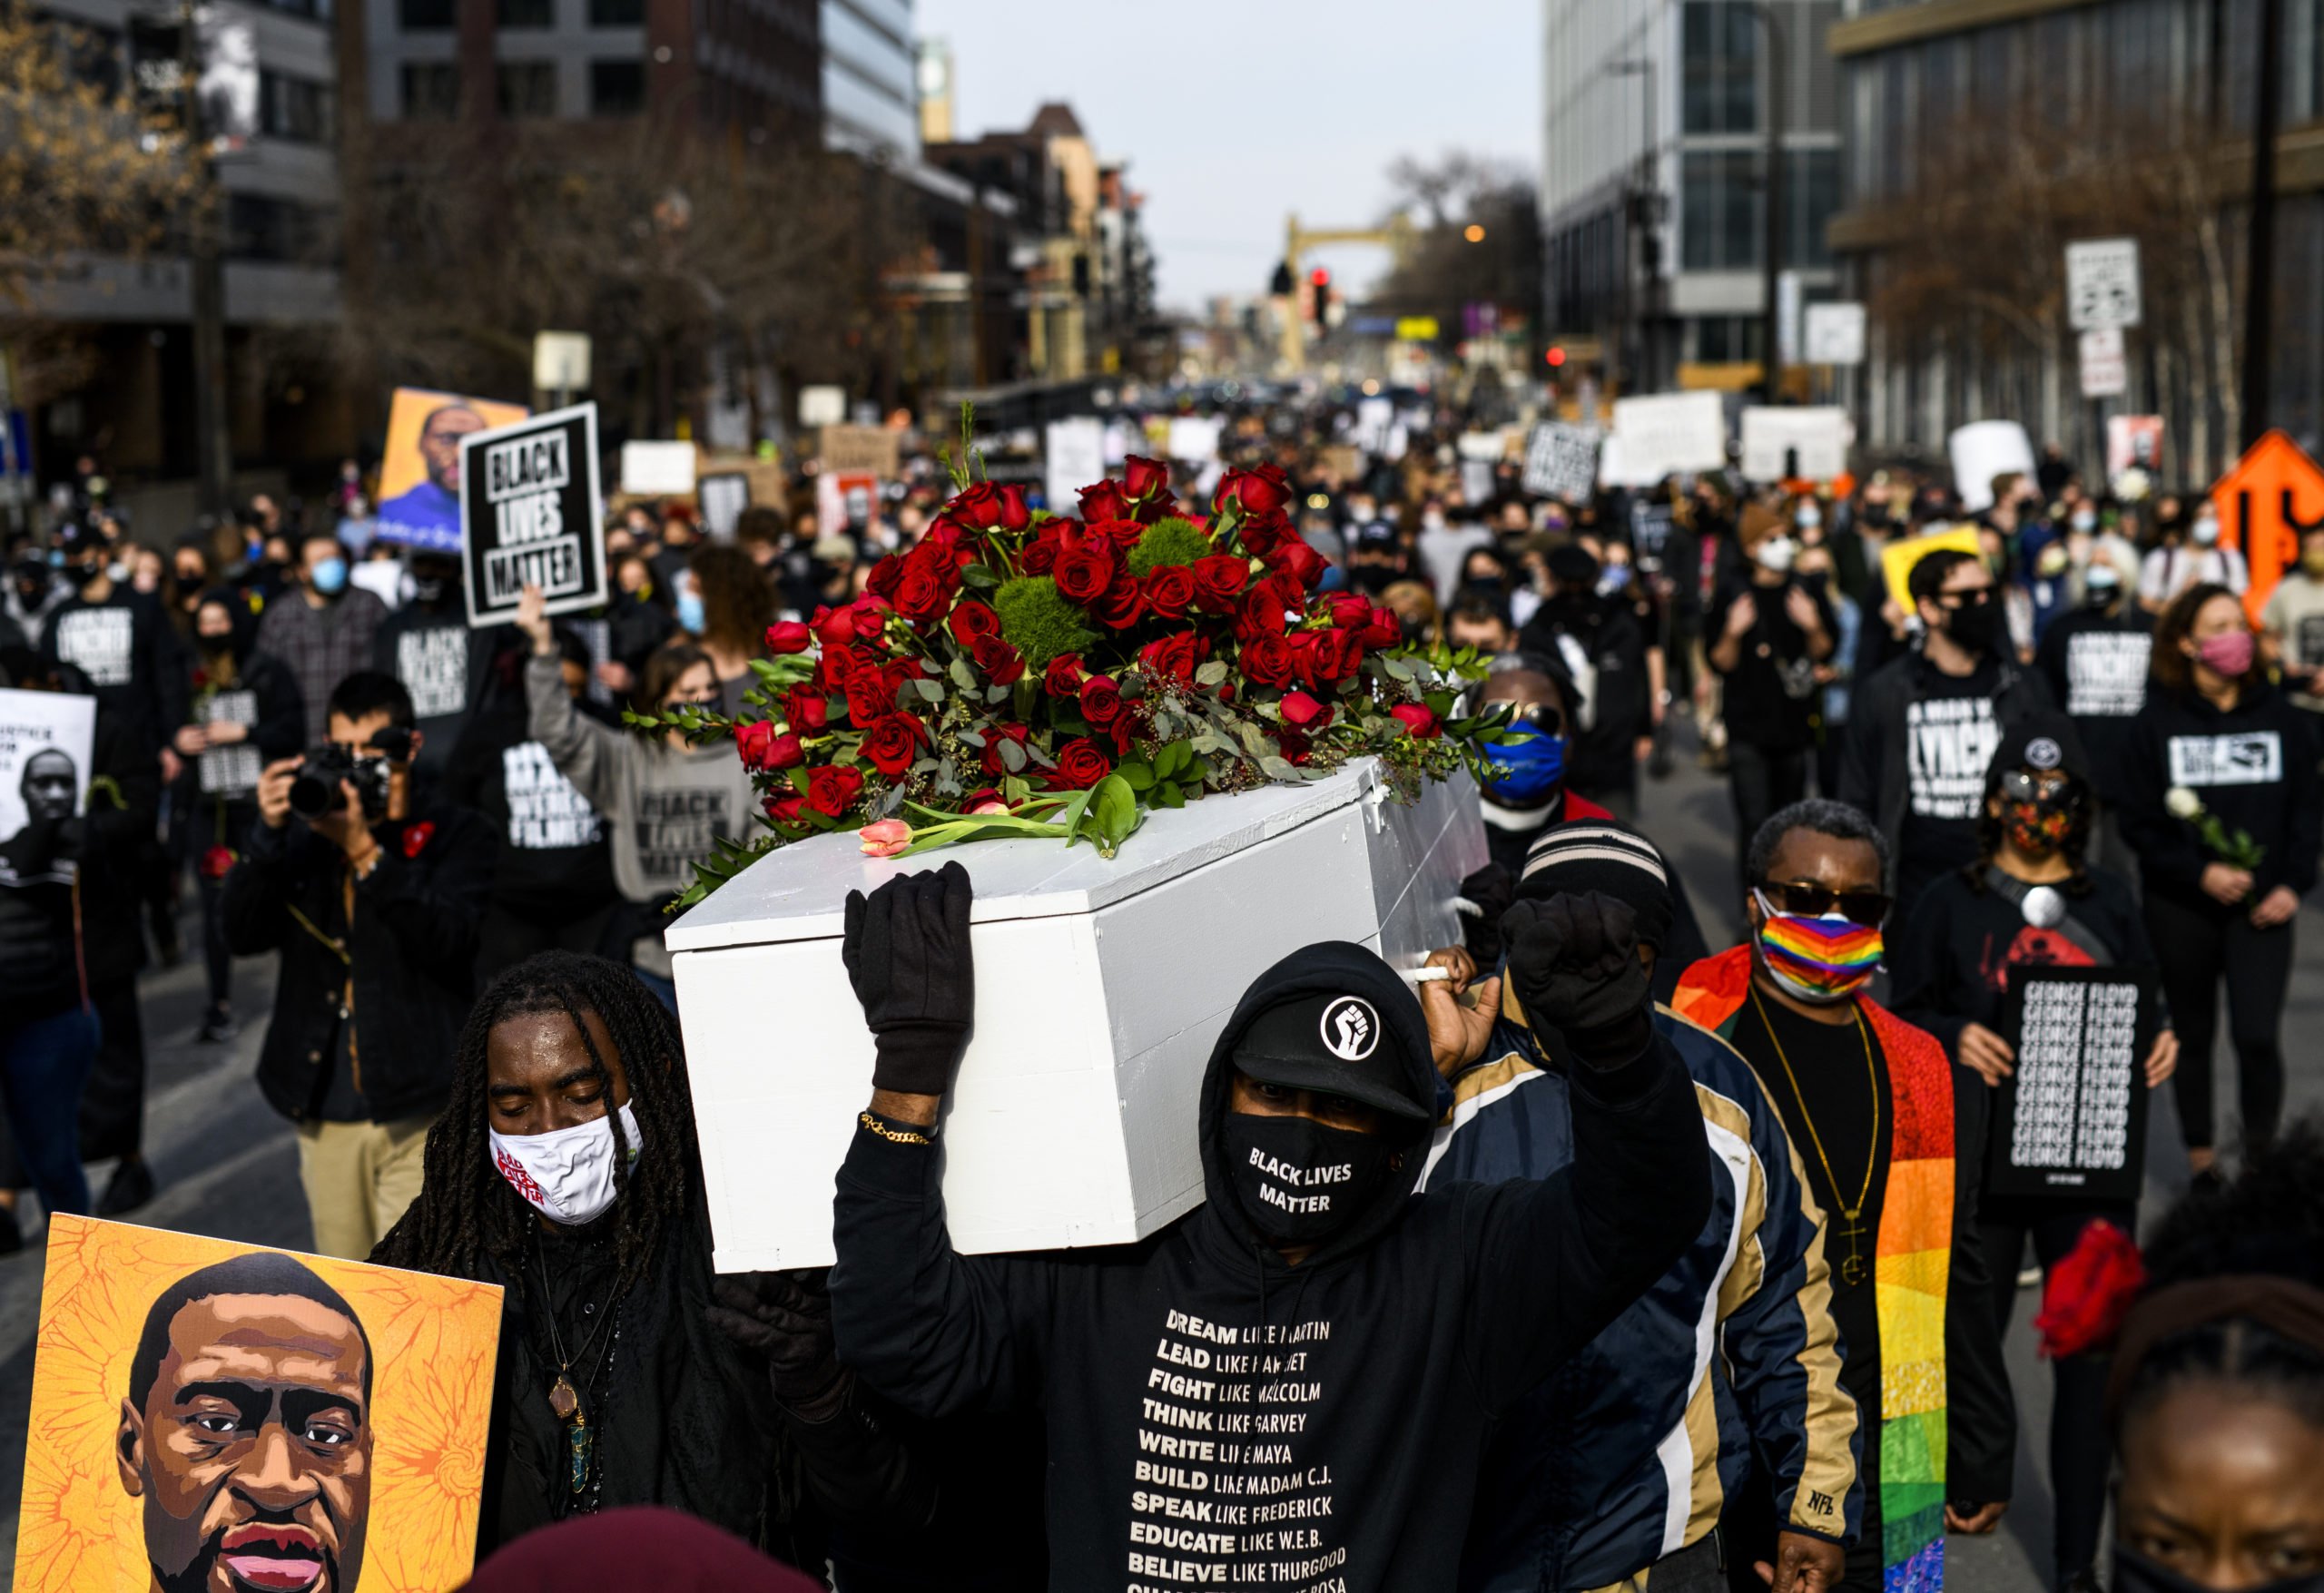 MINNEAPOLIS, MN - MARCH 7: People carry a casket covered in roses during a march in honor of George Floyd on March 7, 2021 in Minneapolis, Minnesota. Jury selection in the trial of former Minneapolis Police Officer Derek Chauvin, who is accused of killing Floyd, starts on Monday, March 8. (Photo by Stephen Maturen/Getty Images)